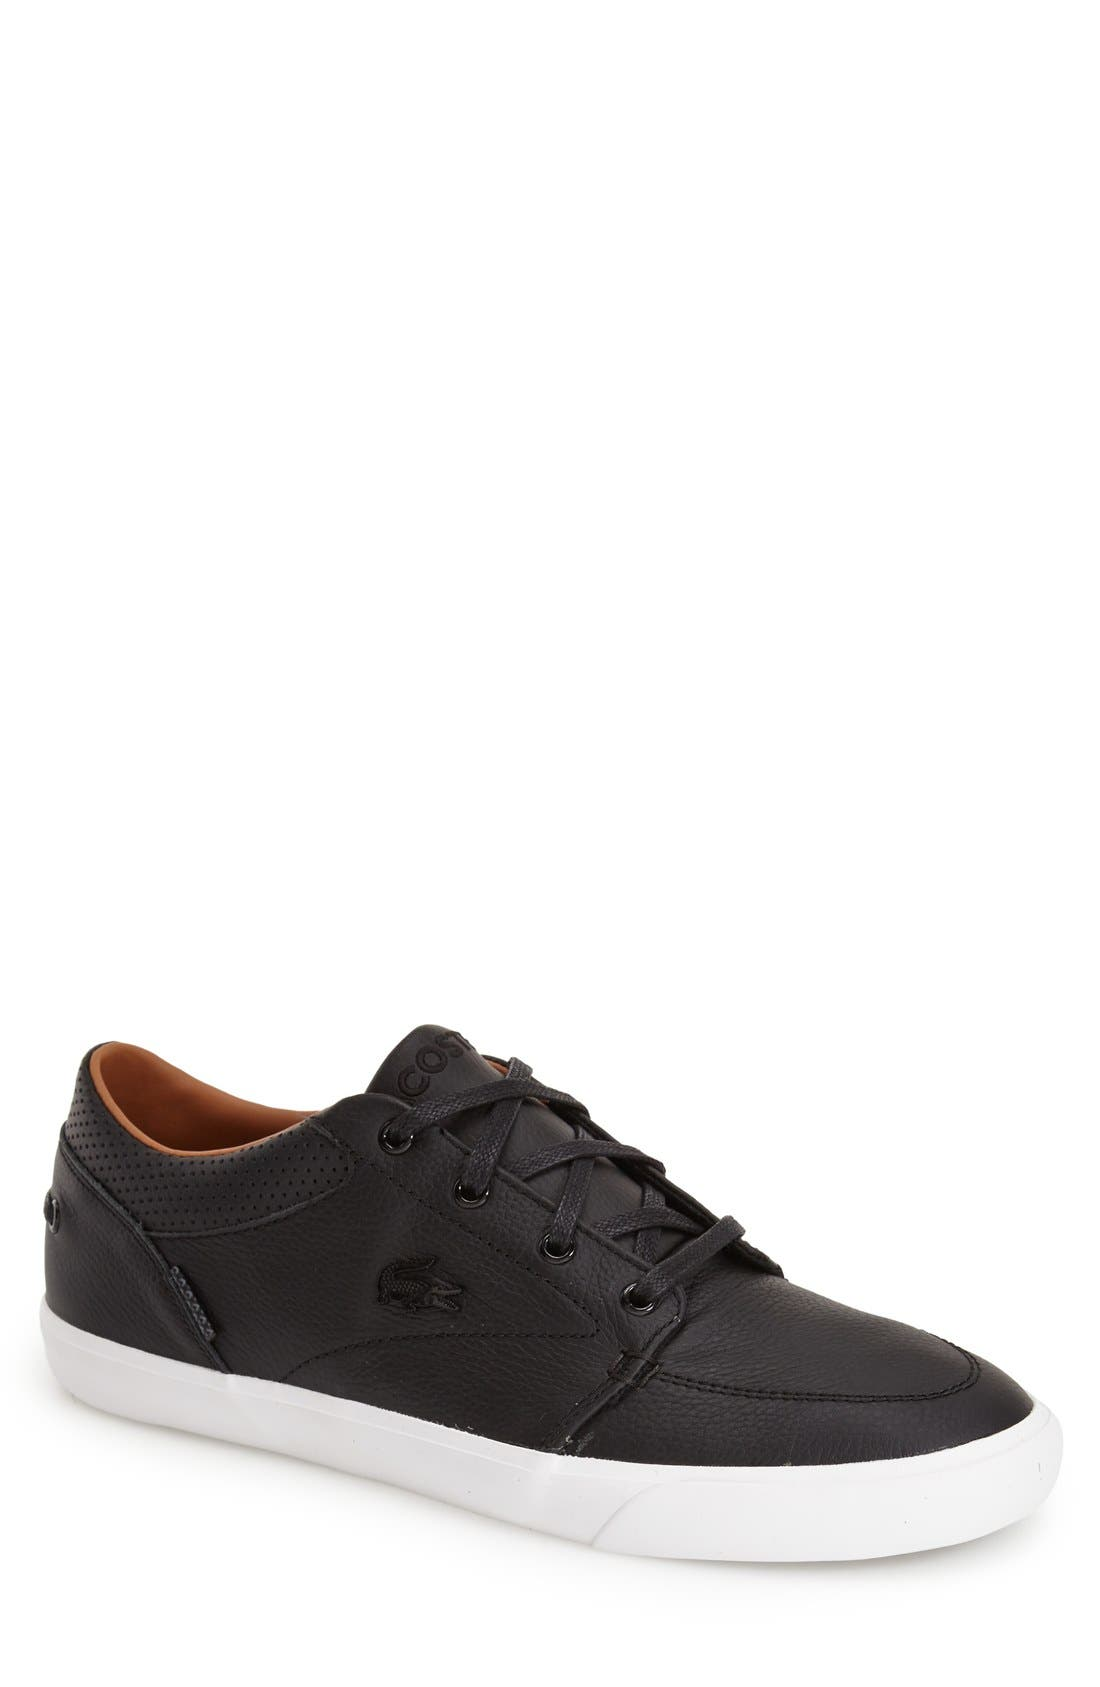 LACOSTE,                             'Bayliss' Sneaker,                             Main thumbnail 1, color,                             009